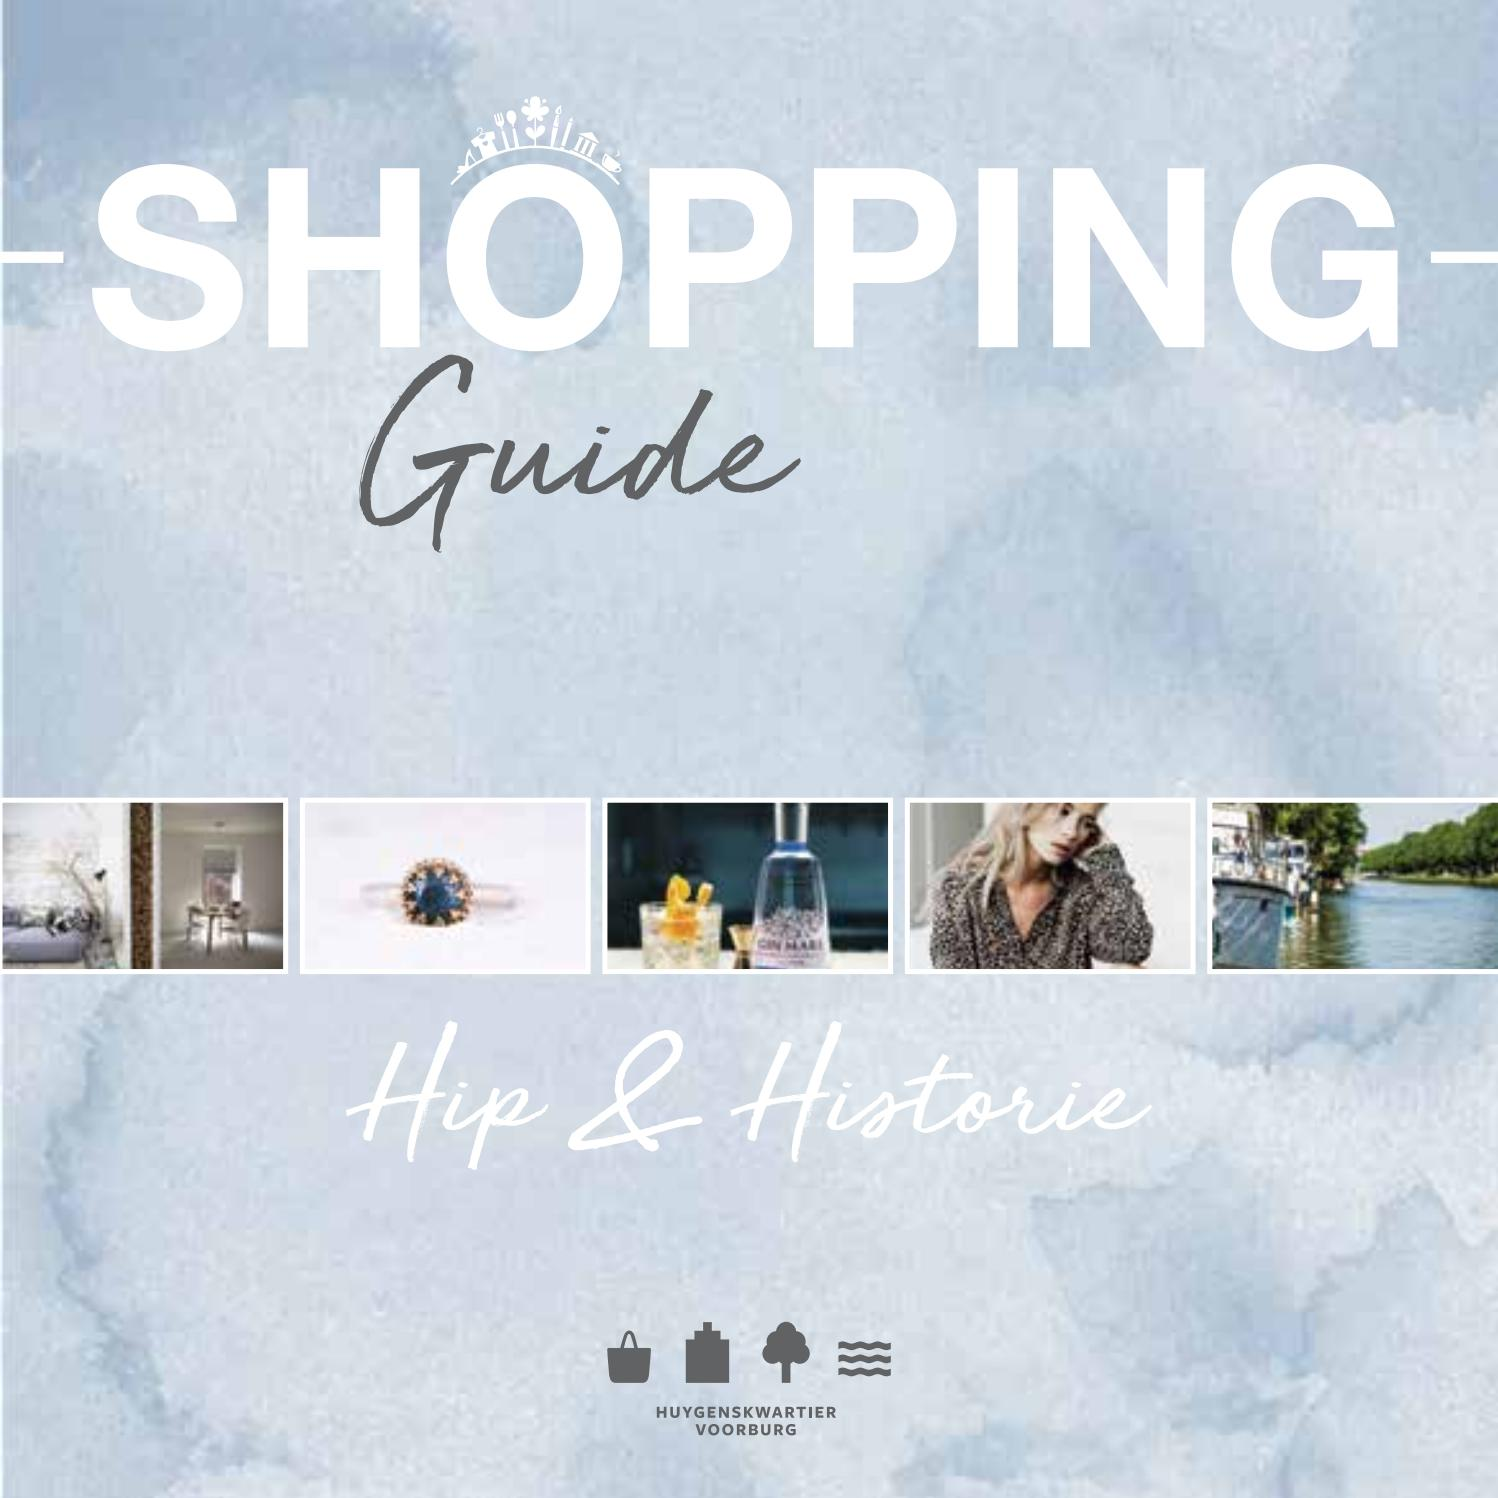 Huygenskwartier Shoppingguide Huygenskwartier Shoppingguide Voorburg Issuu Issuu Voorburg By By Shoppingguide RL4Aj5